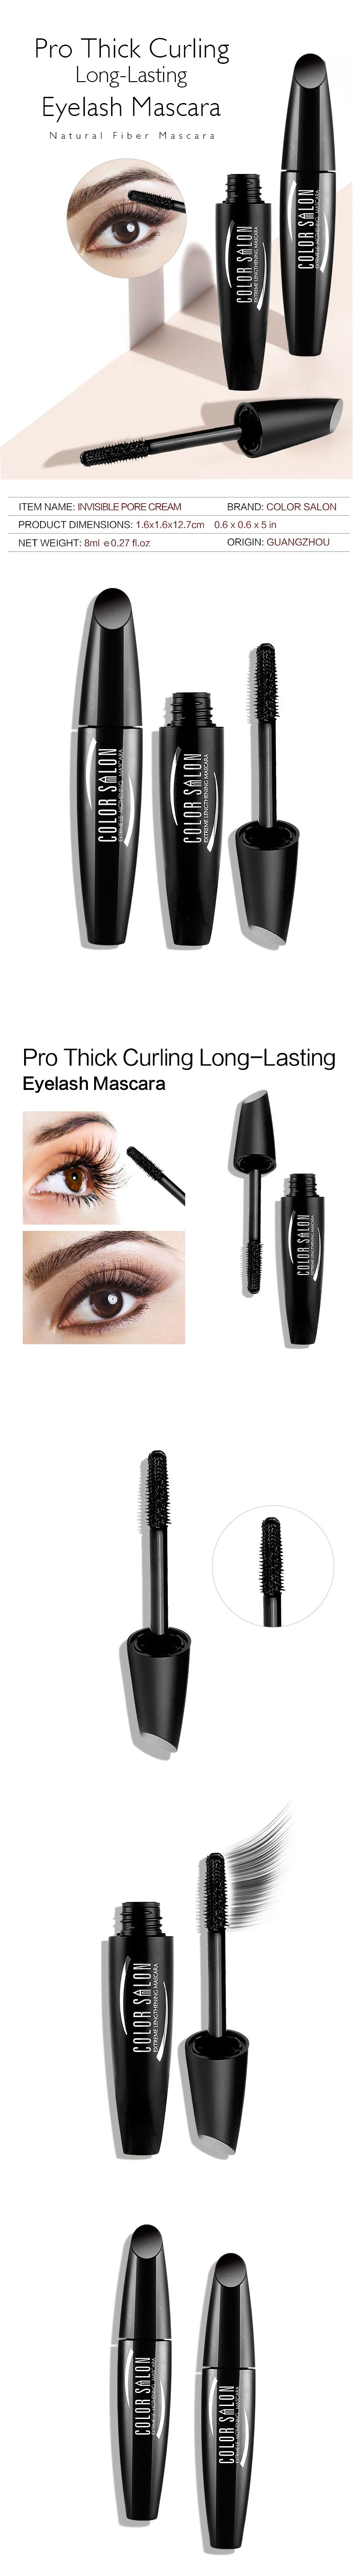 Color Salon Pro Thick Curling Long-lasting Eyelash Mascara Natural fiber Mascara 8g Waterproof Eyelash Brand Eye Lashes Beauty